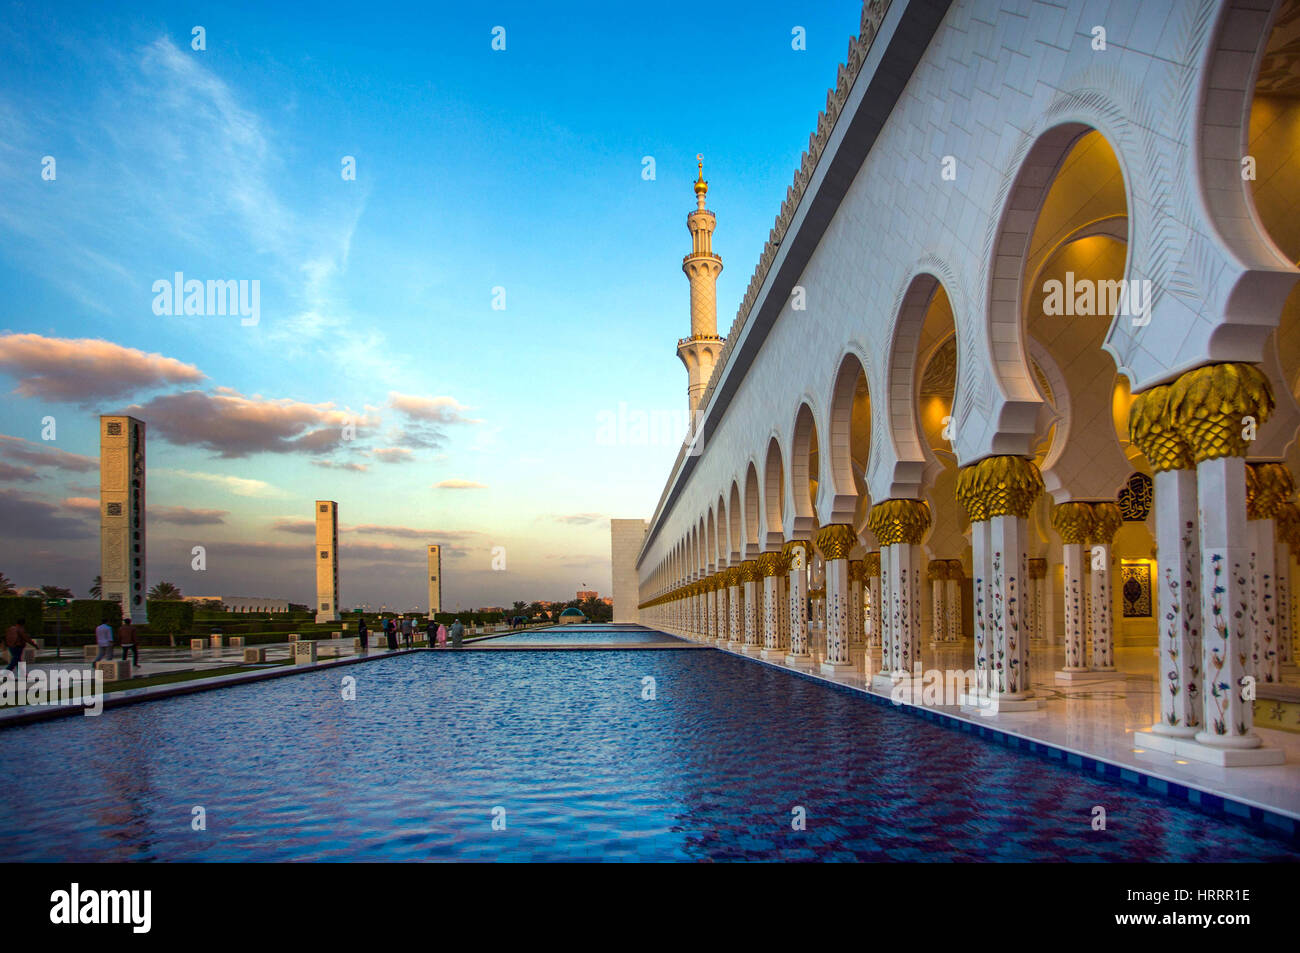 Grande Mosquée de Sheikh Zayed à Abu Dhabi, Emirats Arabes Unis. Photo Stock